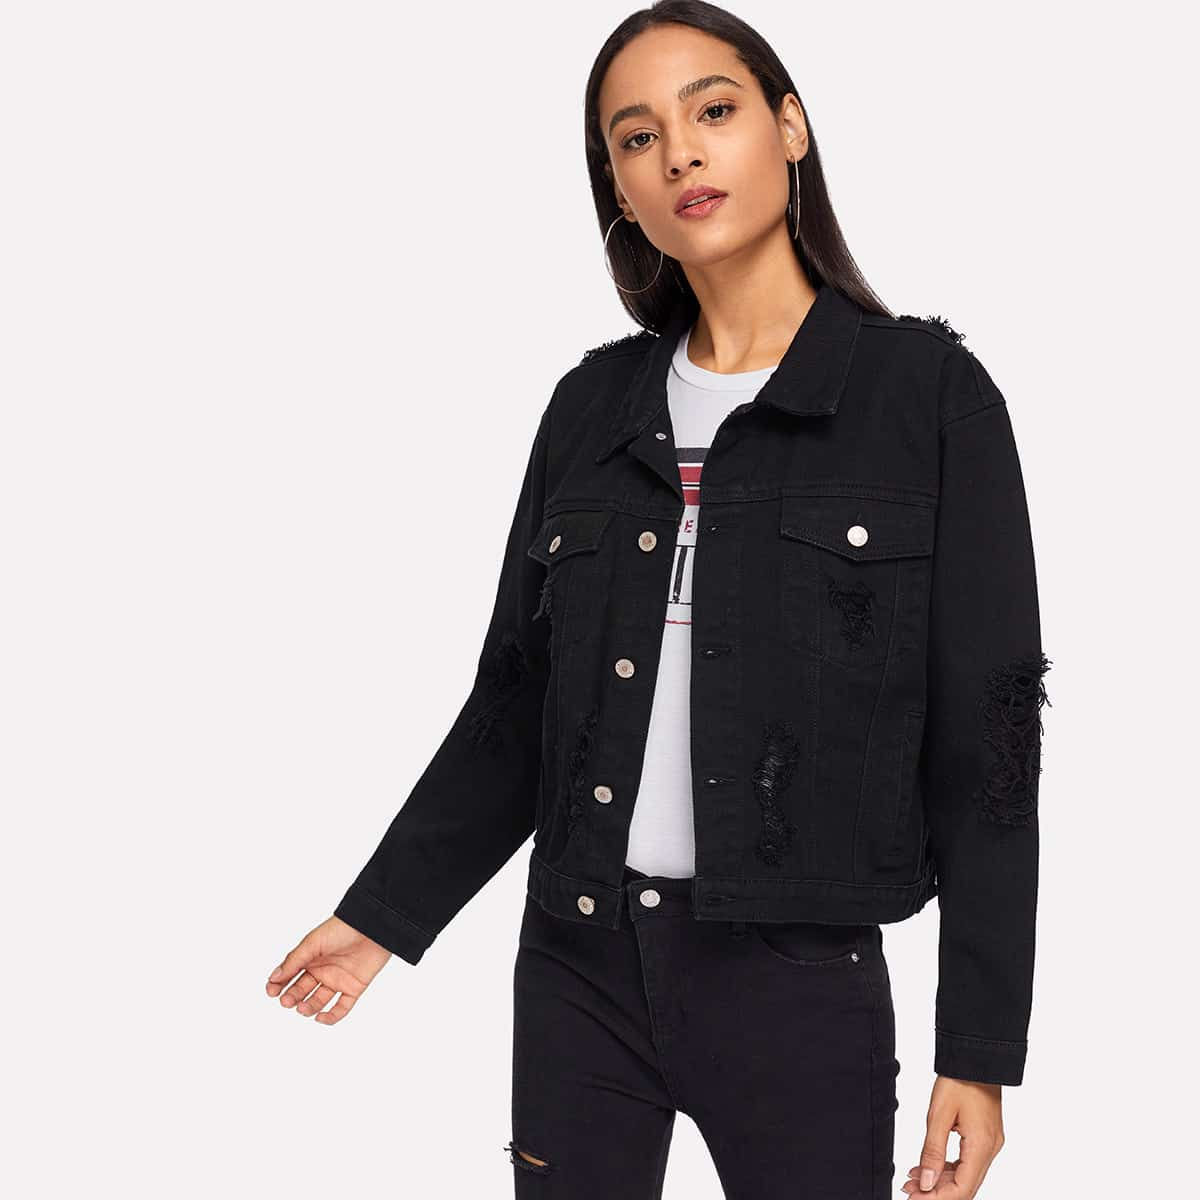 SHEIN coupon: Pocket Patched Ripped Jacket